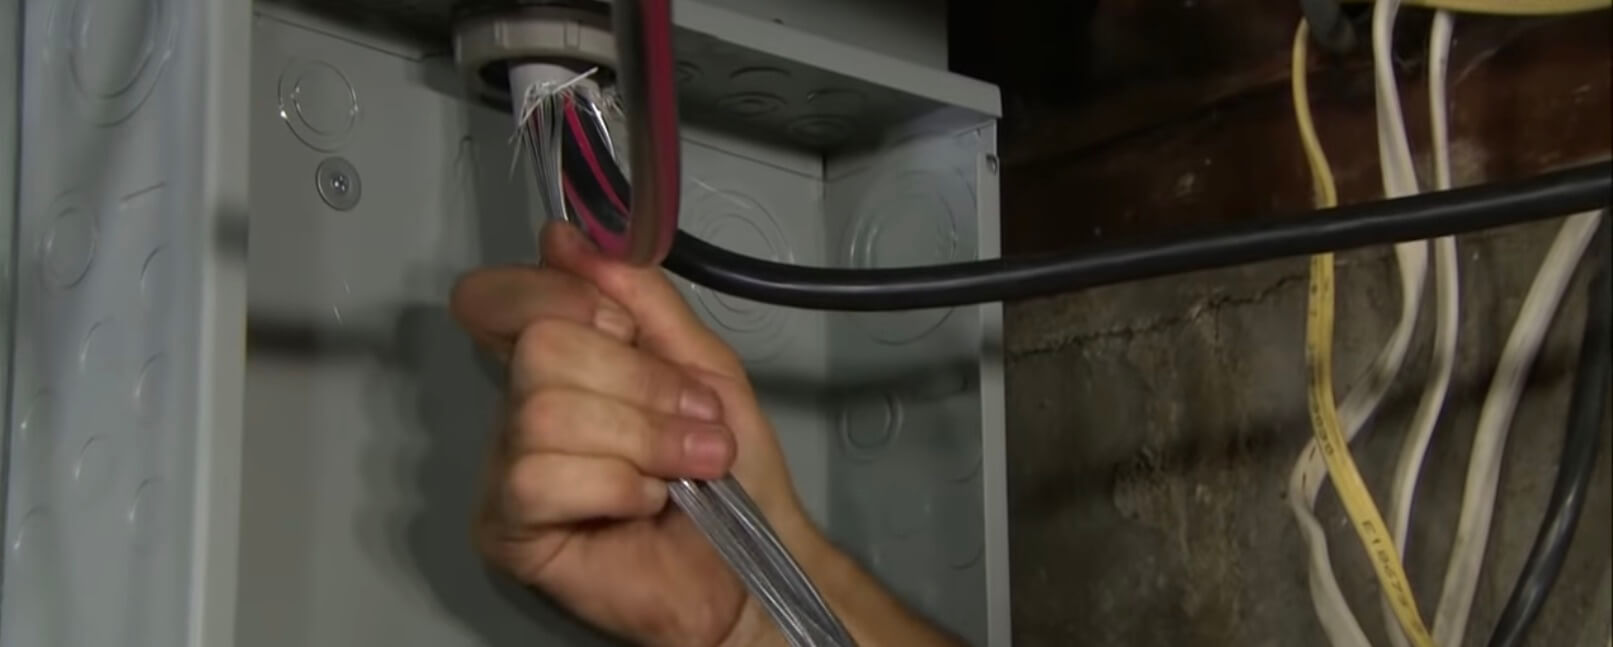 pull wires through for new 200 amp panel